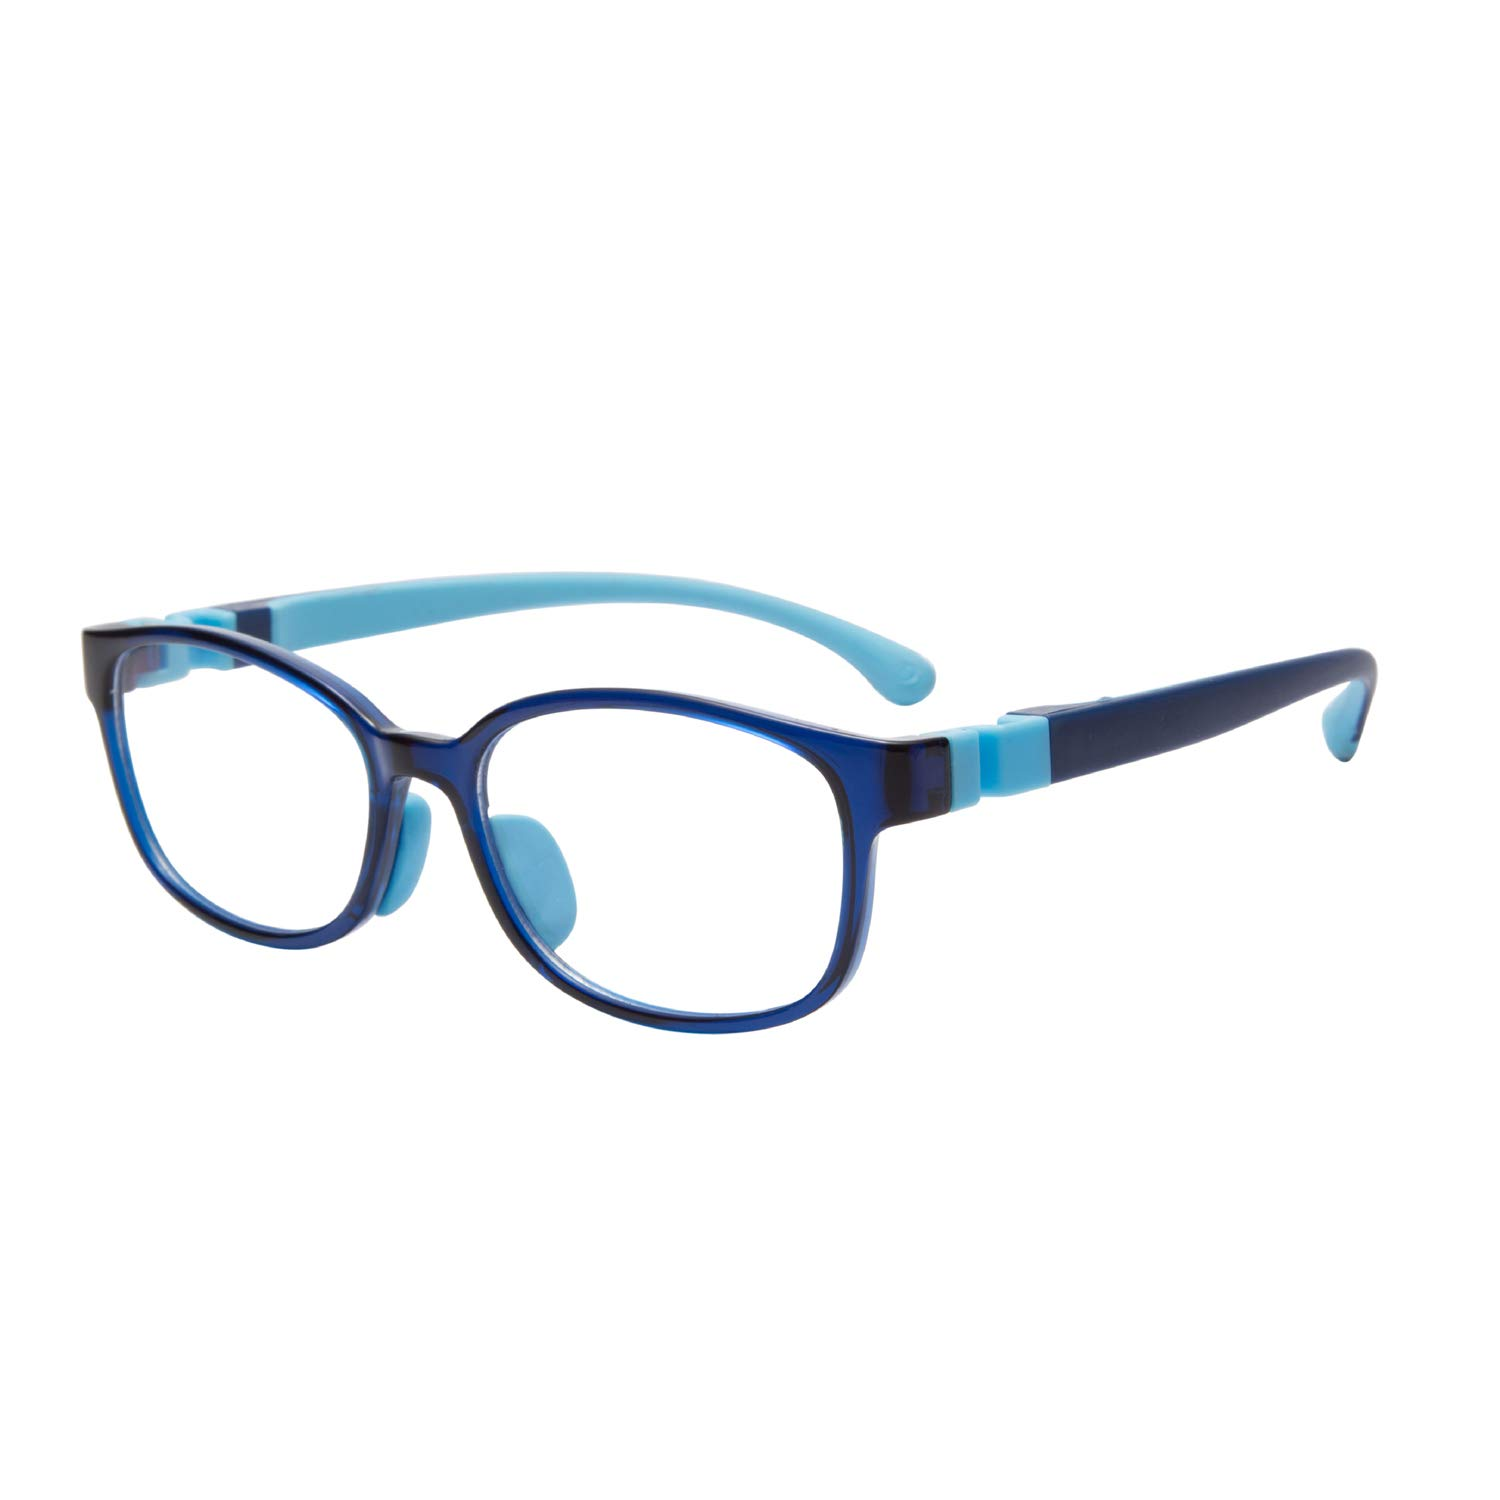 Kids Blue Light Blocking Glasses Madison Avenue Anti Blue Ray Computer Game Glasses for Boys and Girls (Blue)